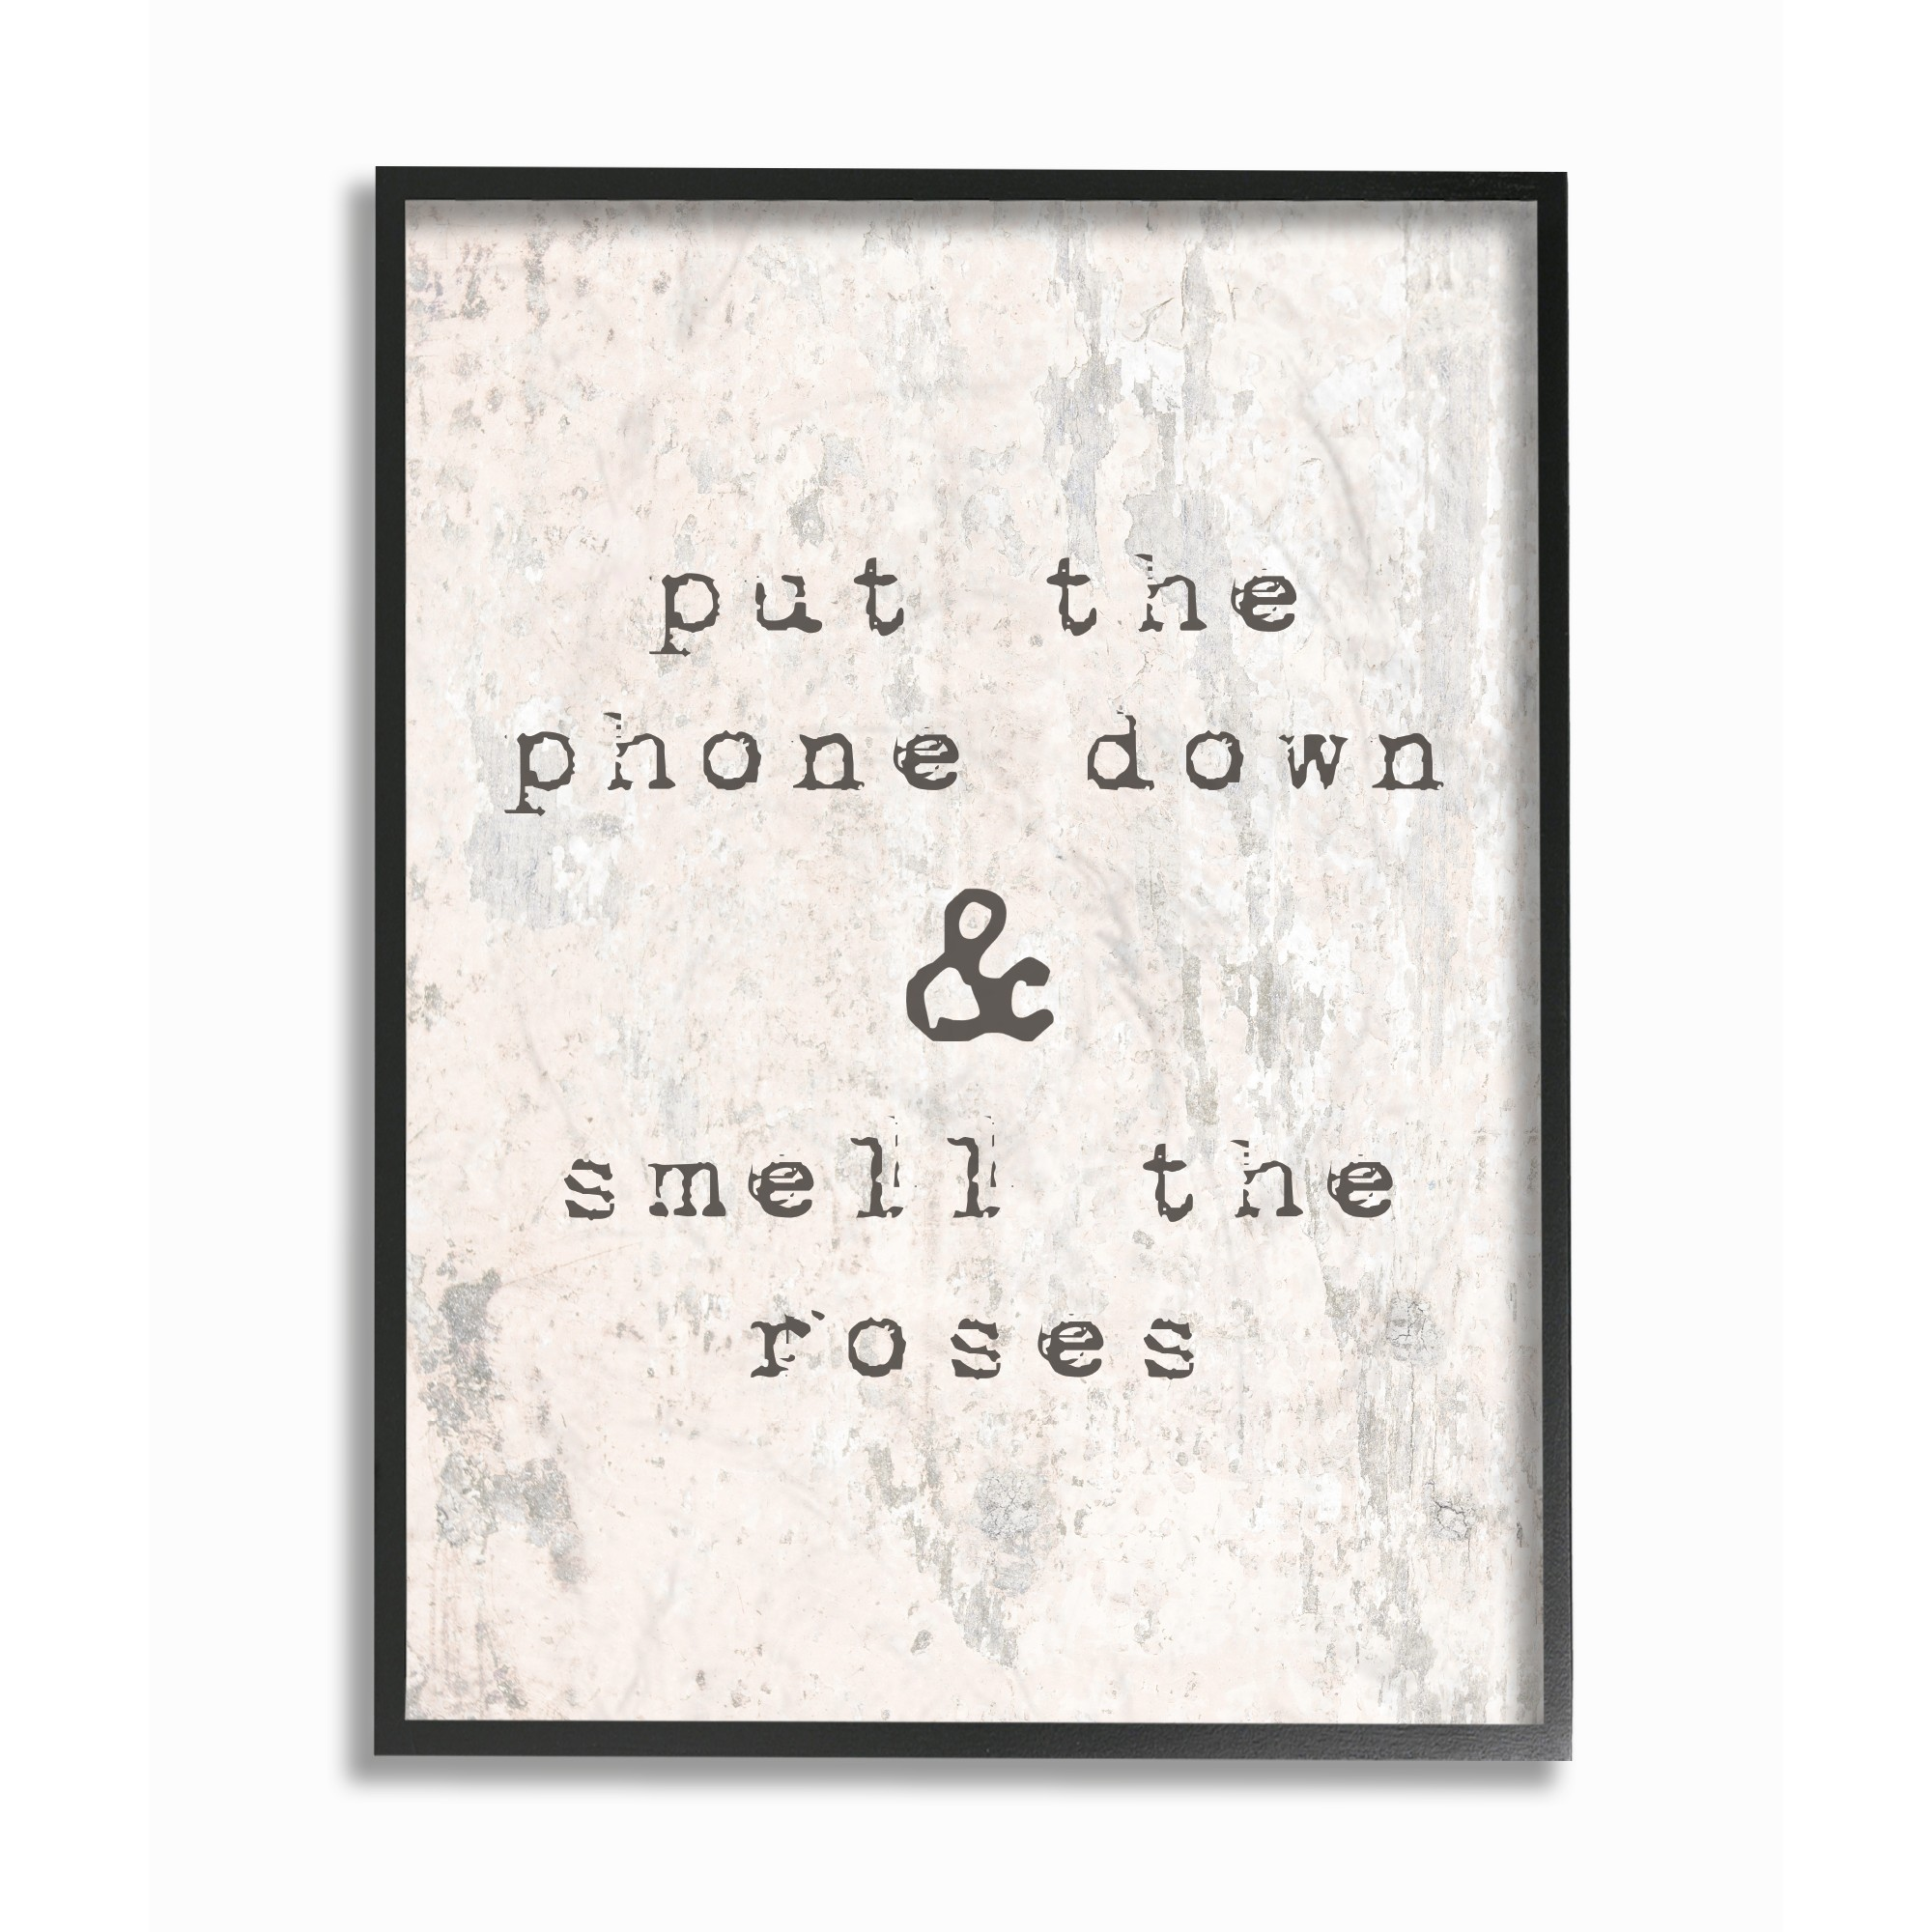 The Stupell Home Decor Collection Put Phone Down Smell Roses Typography Framed Giclee... by Stupell Industries